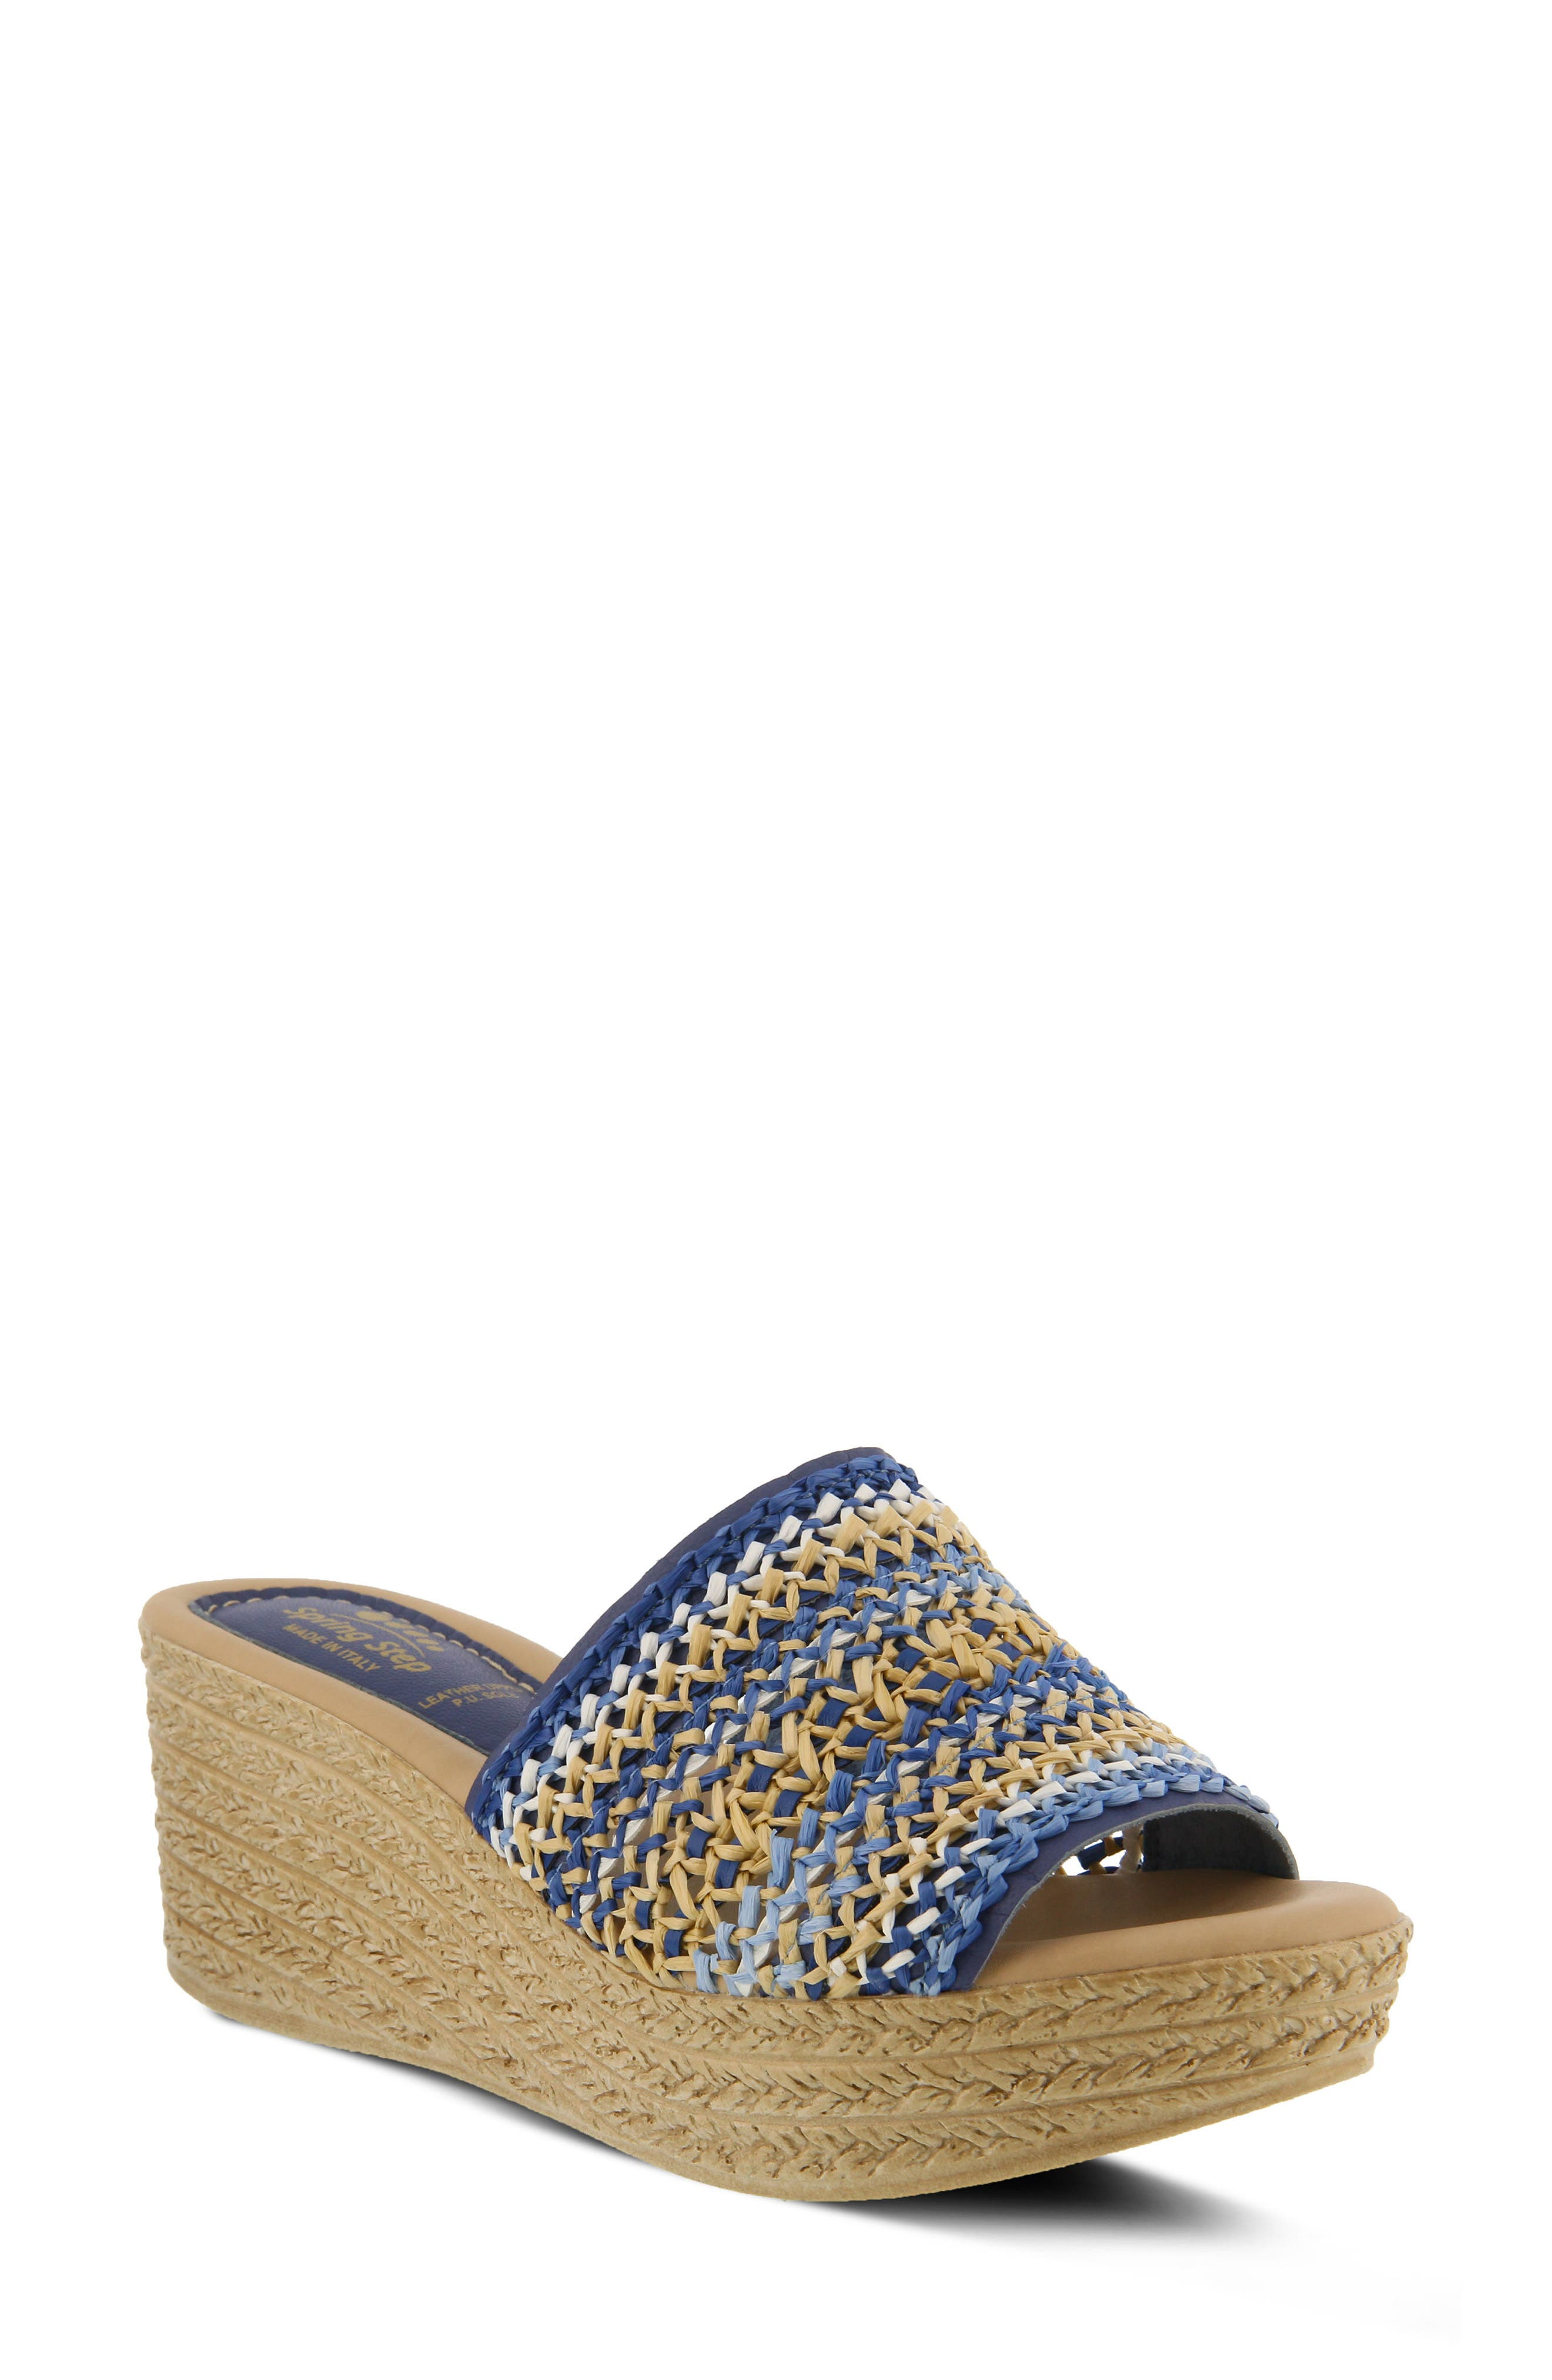 Spring Step Calci Espadrille Wedge Sandal (Women)